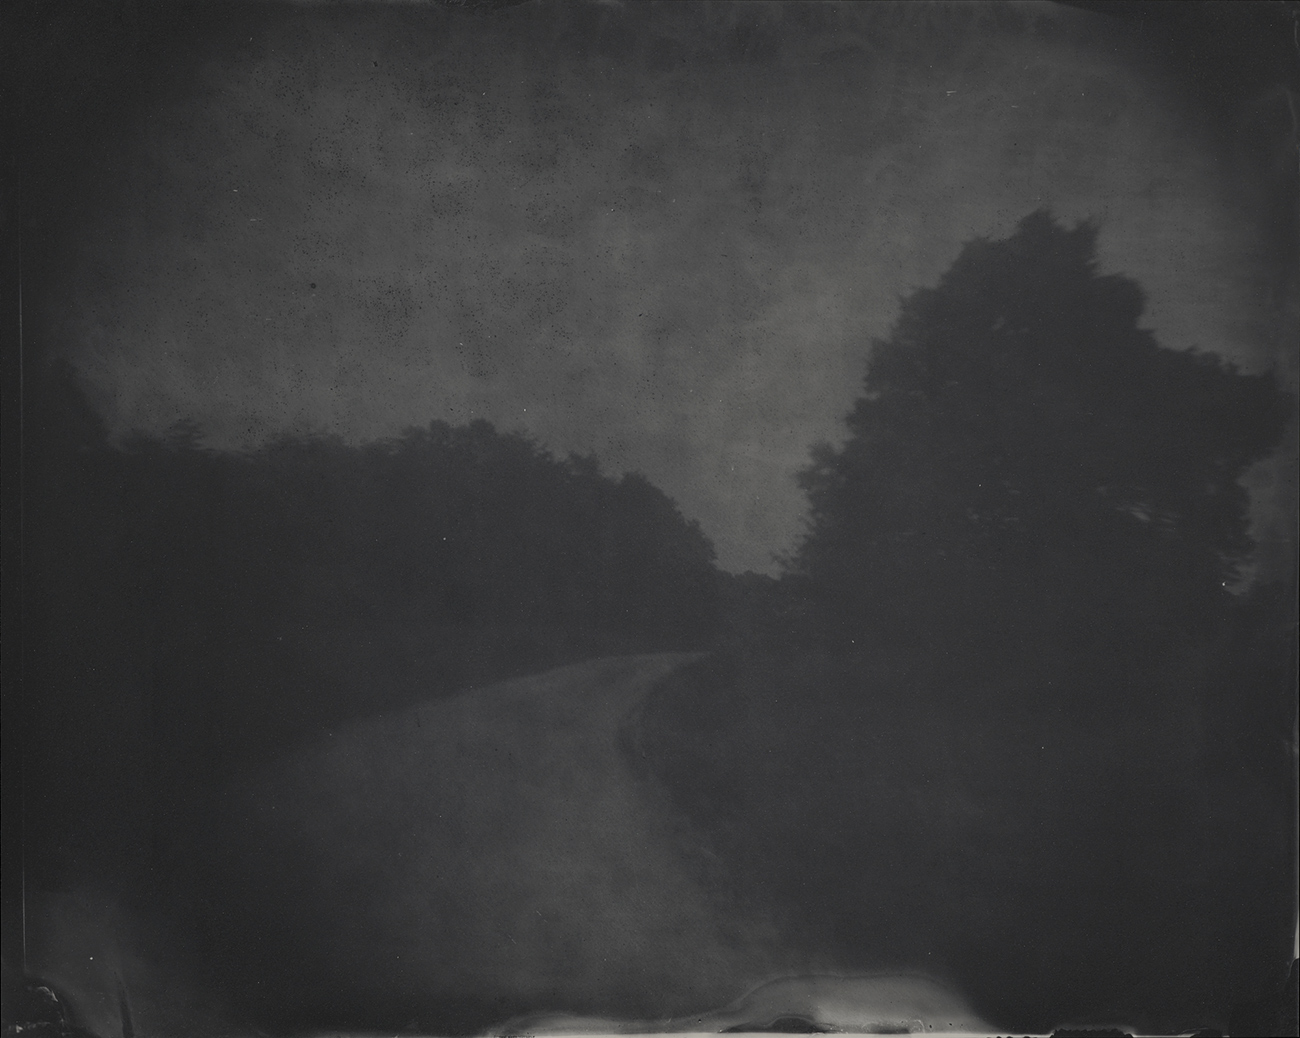 A dark moody photograph of a winding road with large looming trees in shadow on either side.